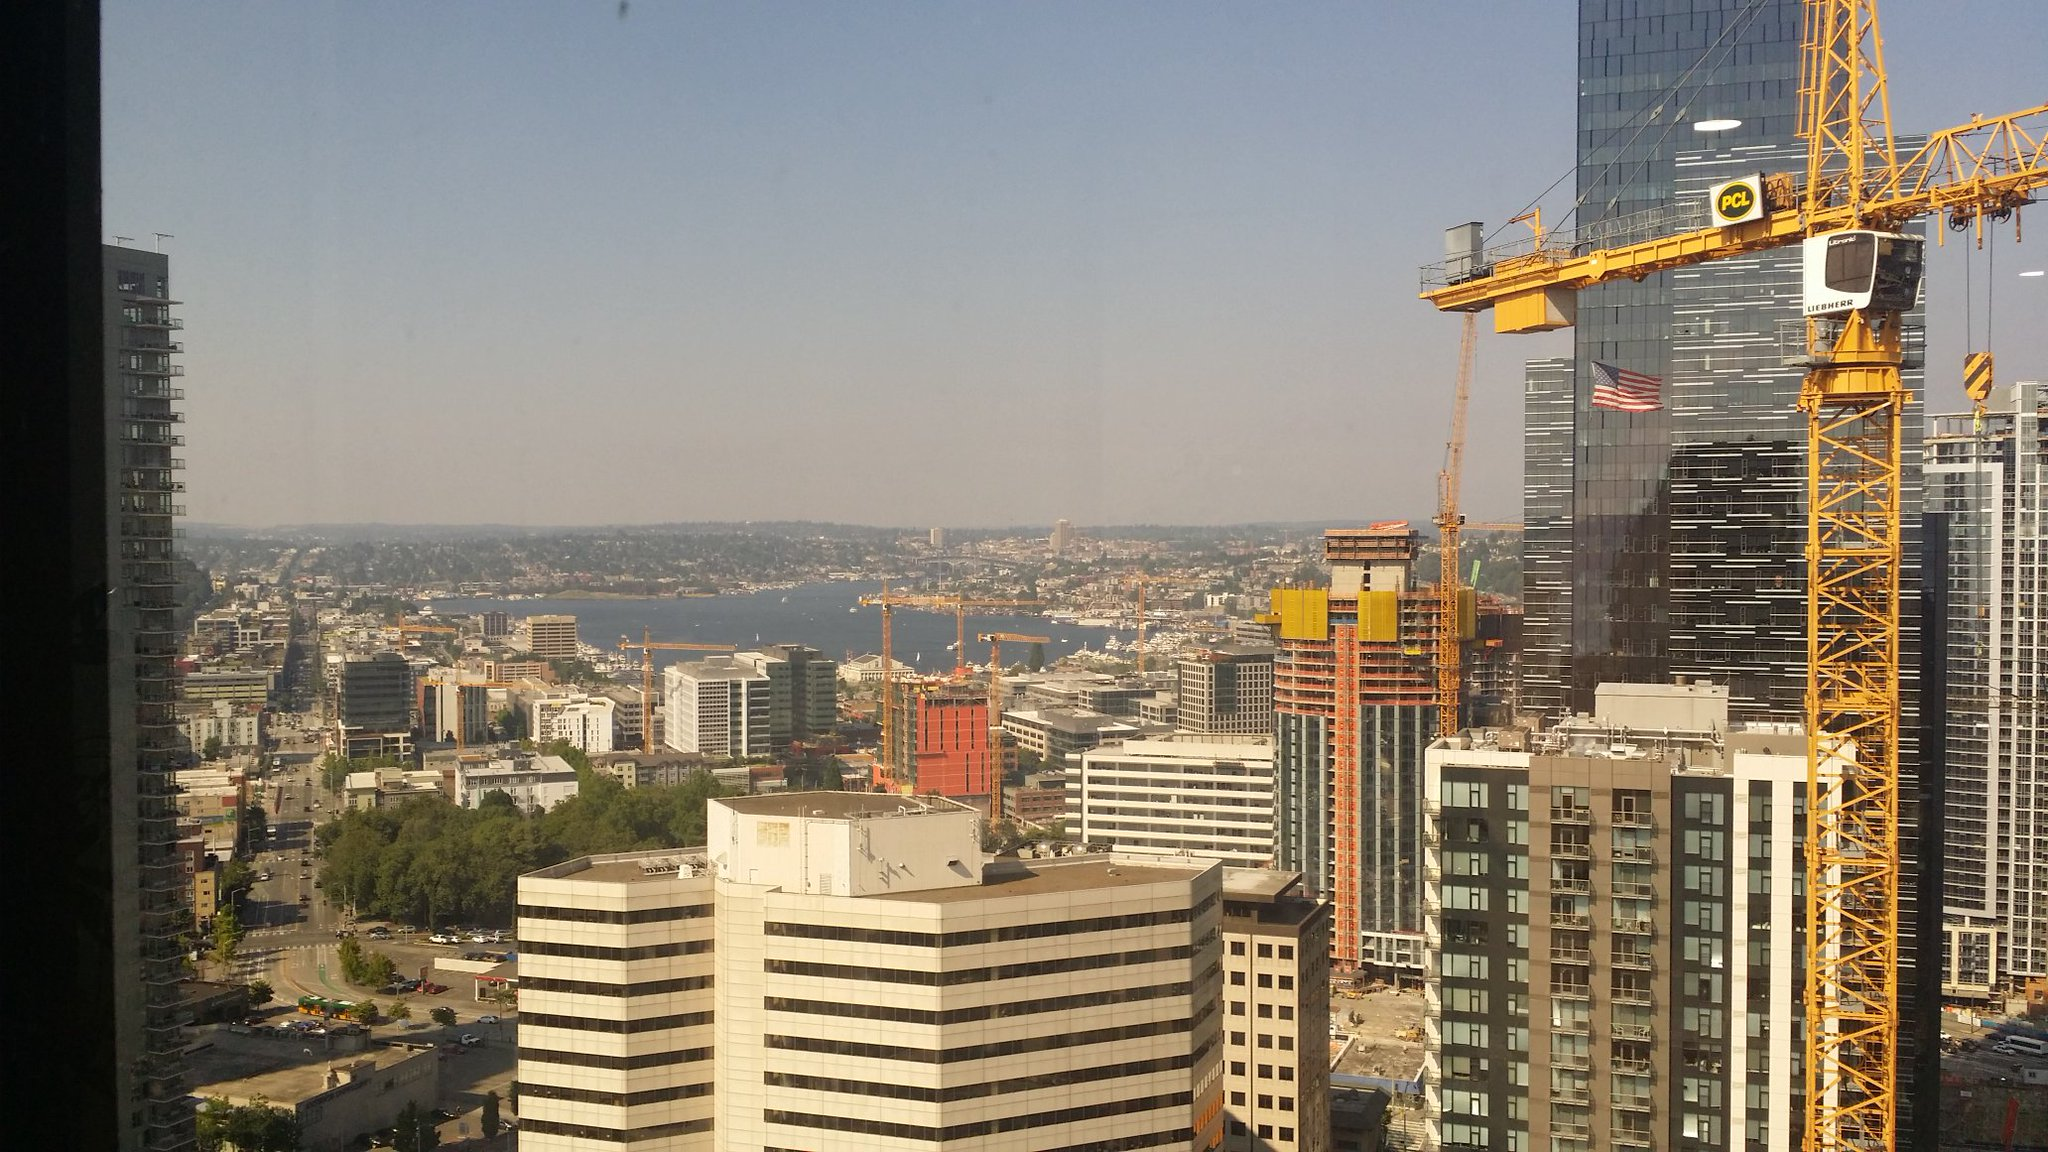 Haze as seen from Seattle. (Photo: @melegyrn)